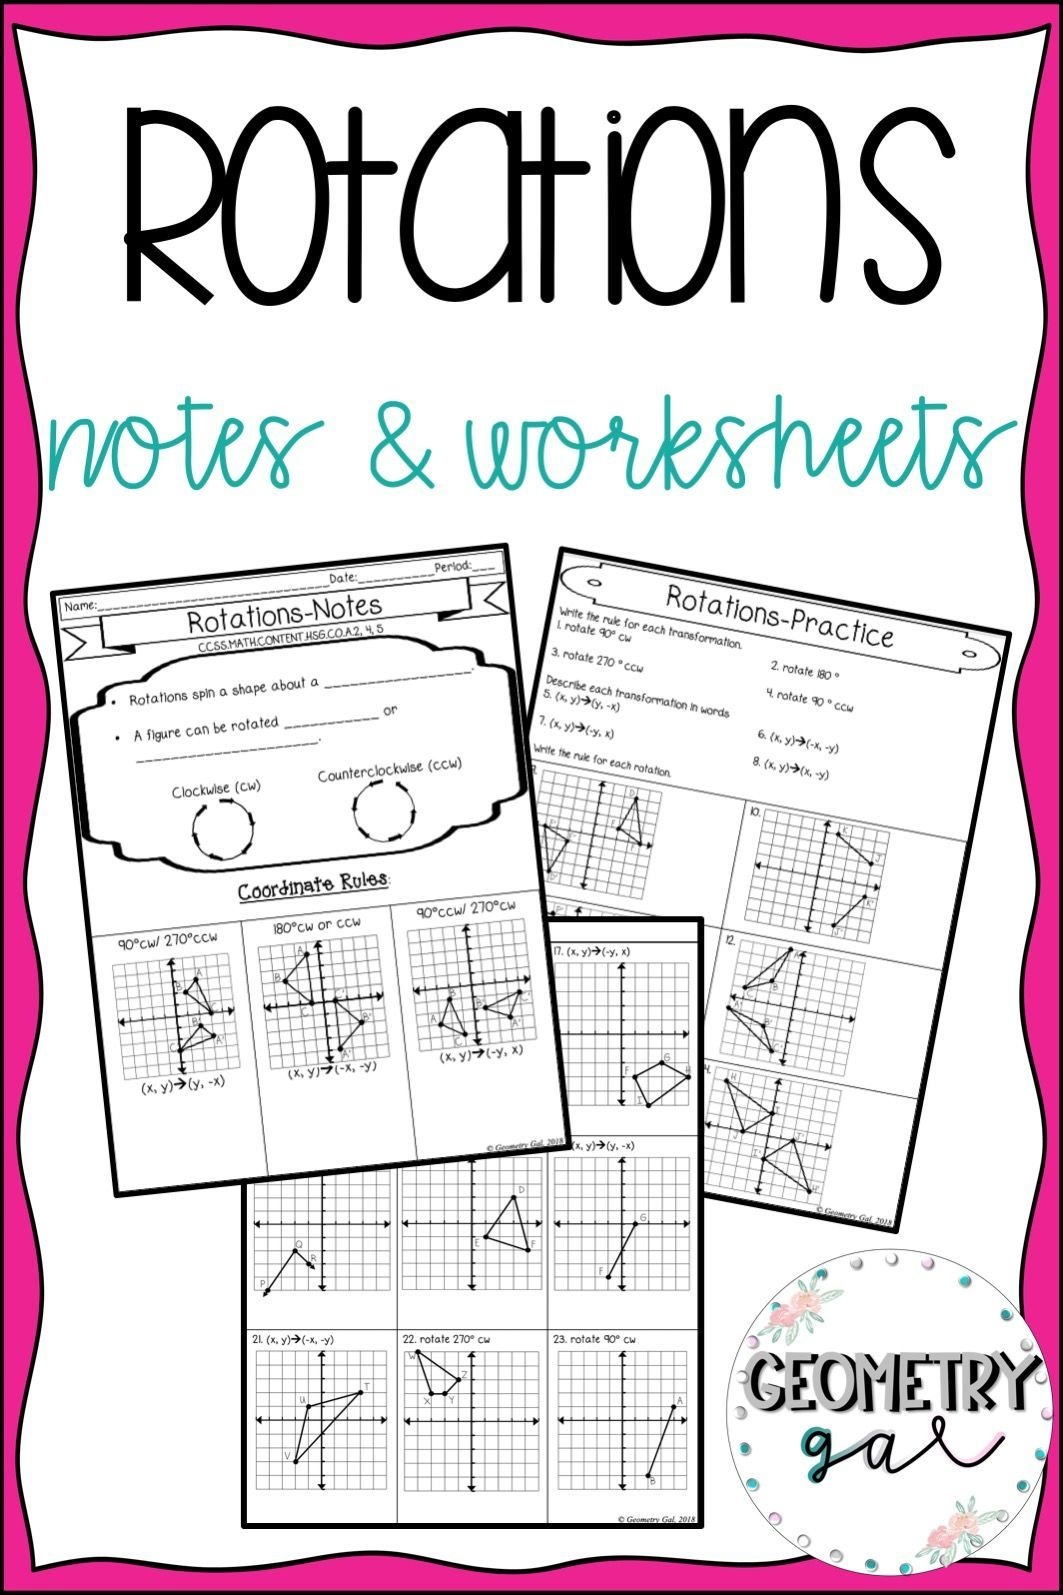 Rotations Notes And Worksheets Guided Notes With Fill In